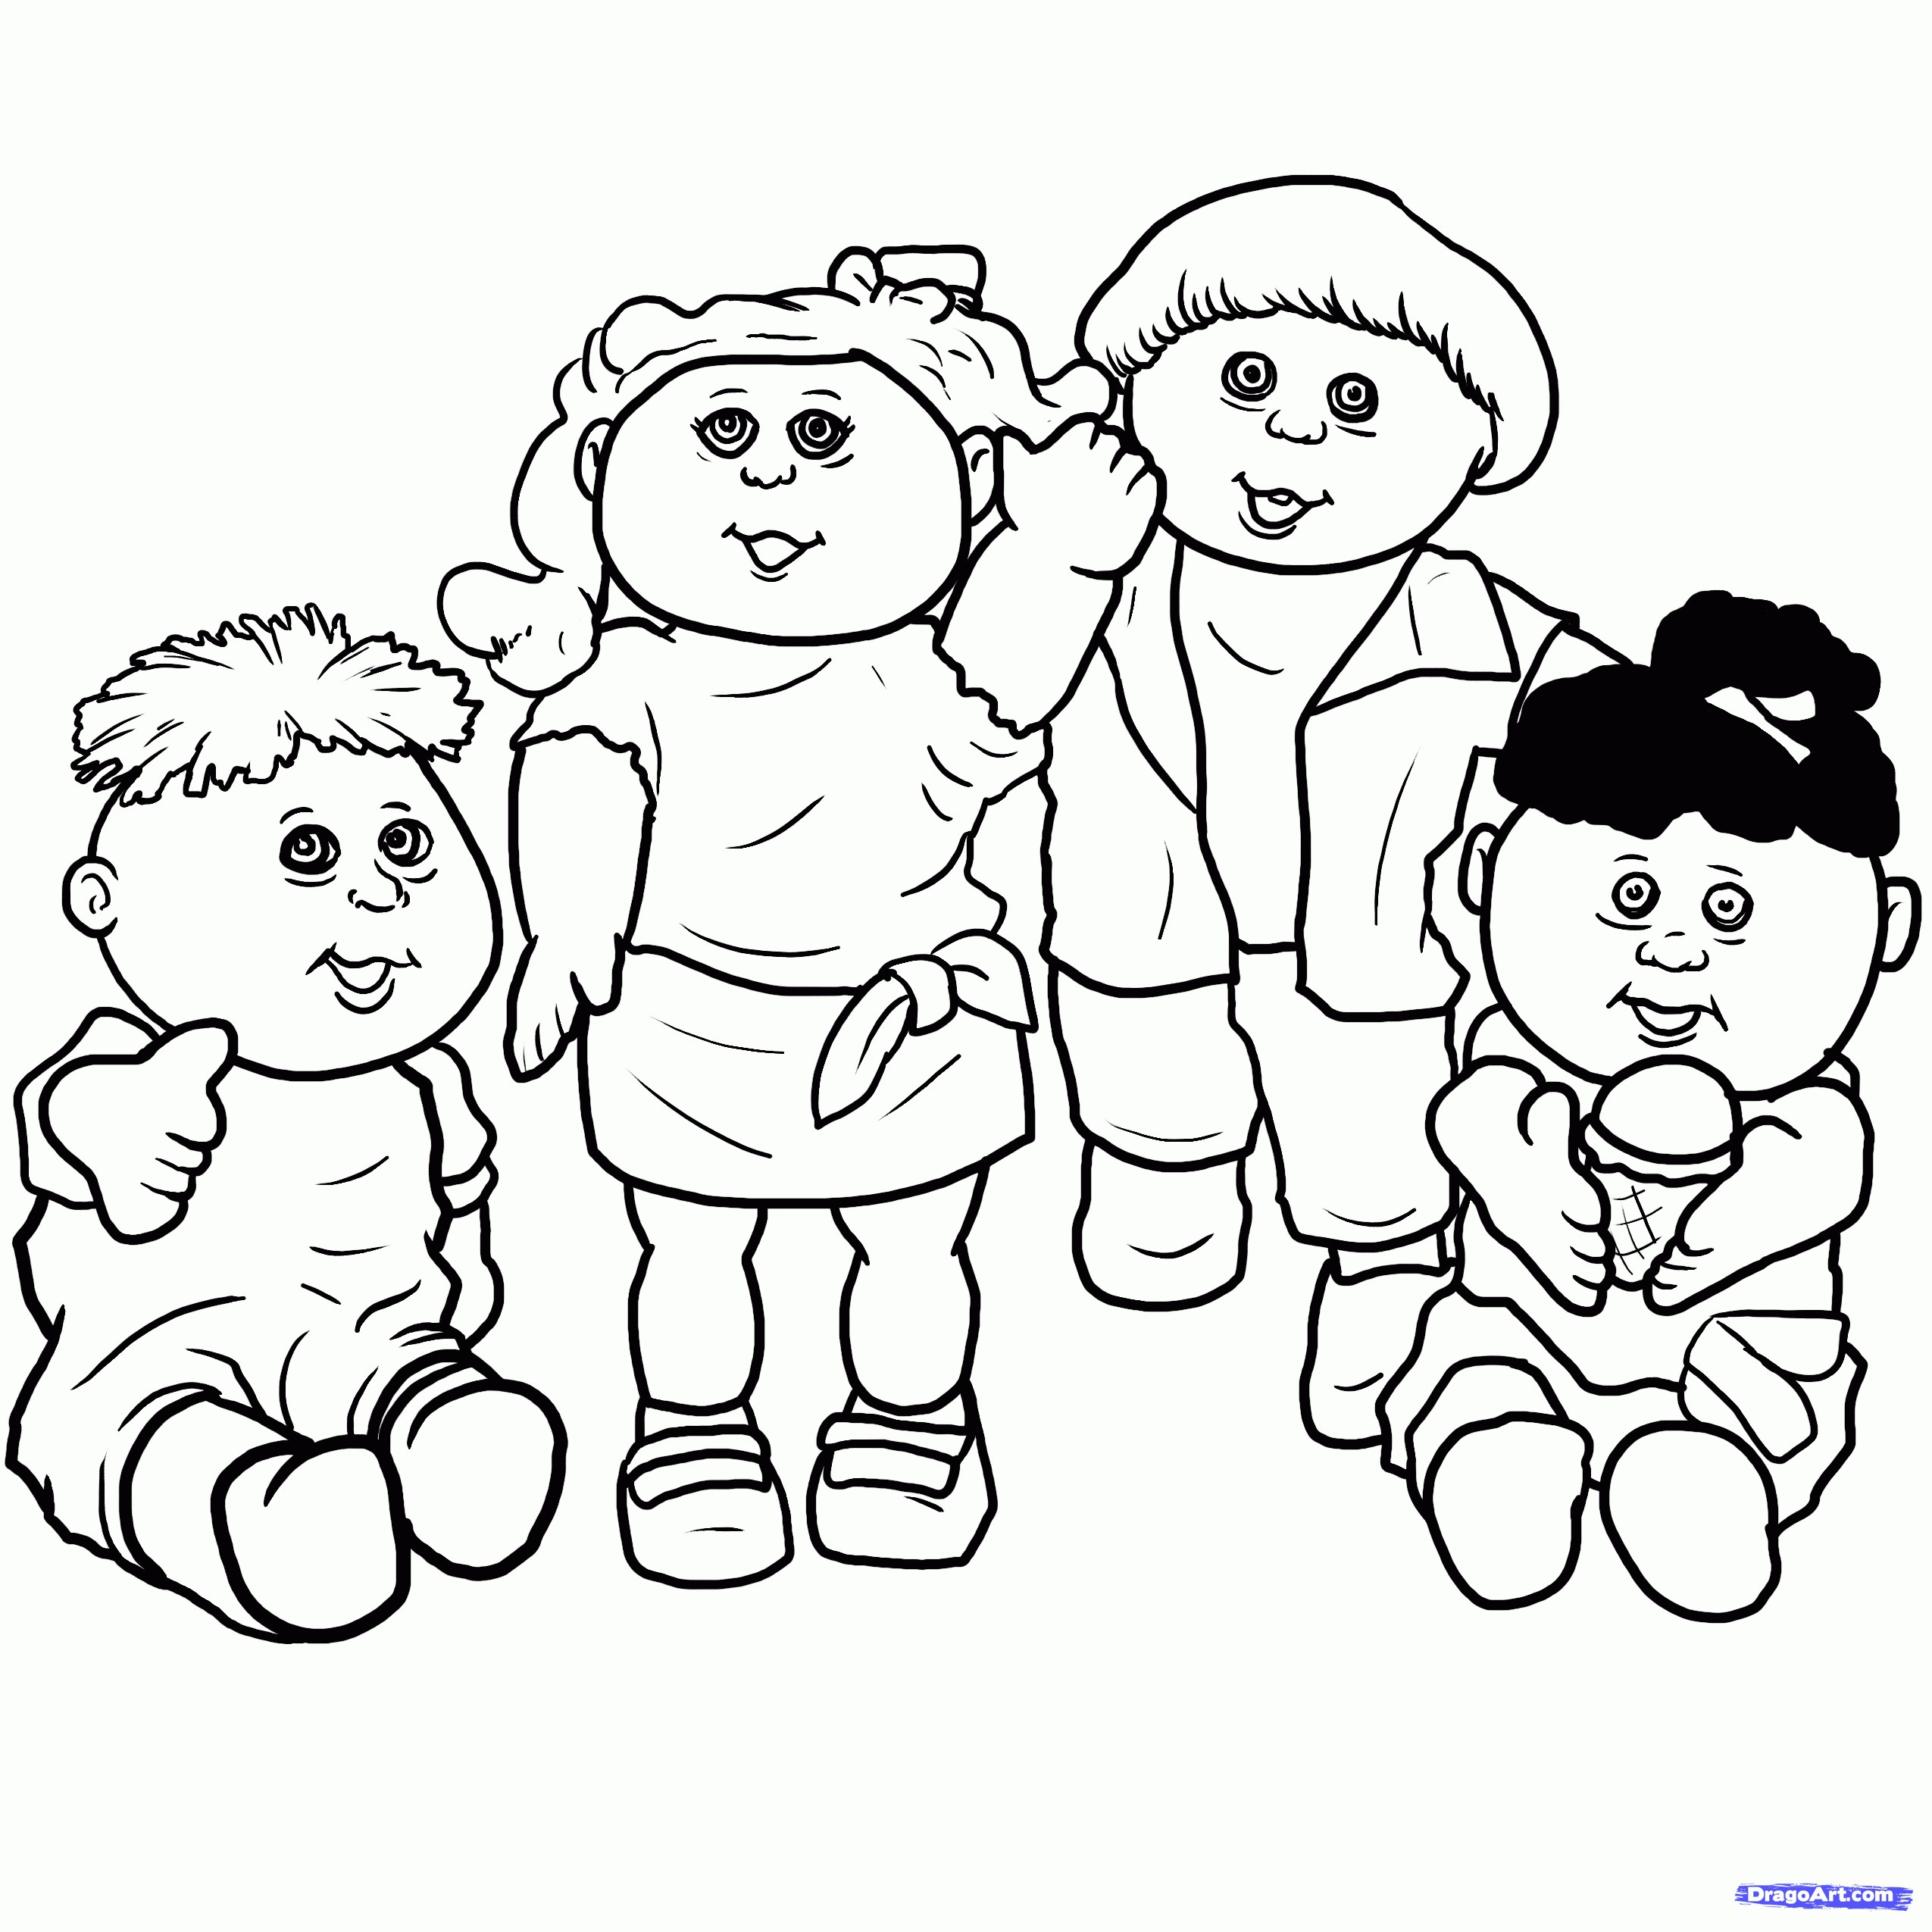 2550x2550 Kids Drawings Images New How To Draw Cabbage Patch Kids Cabbage